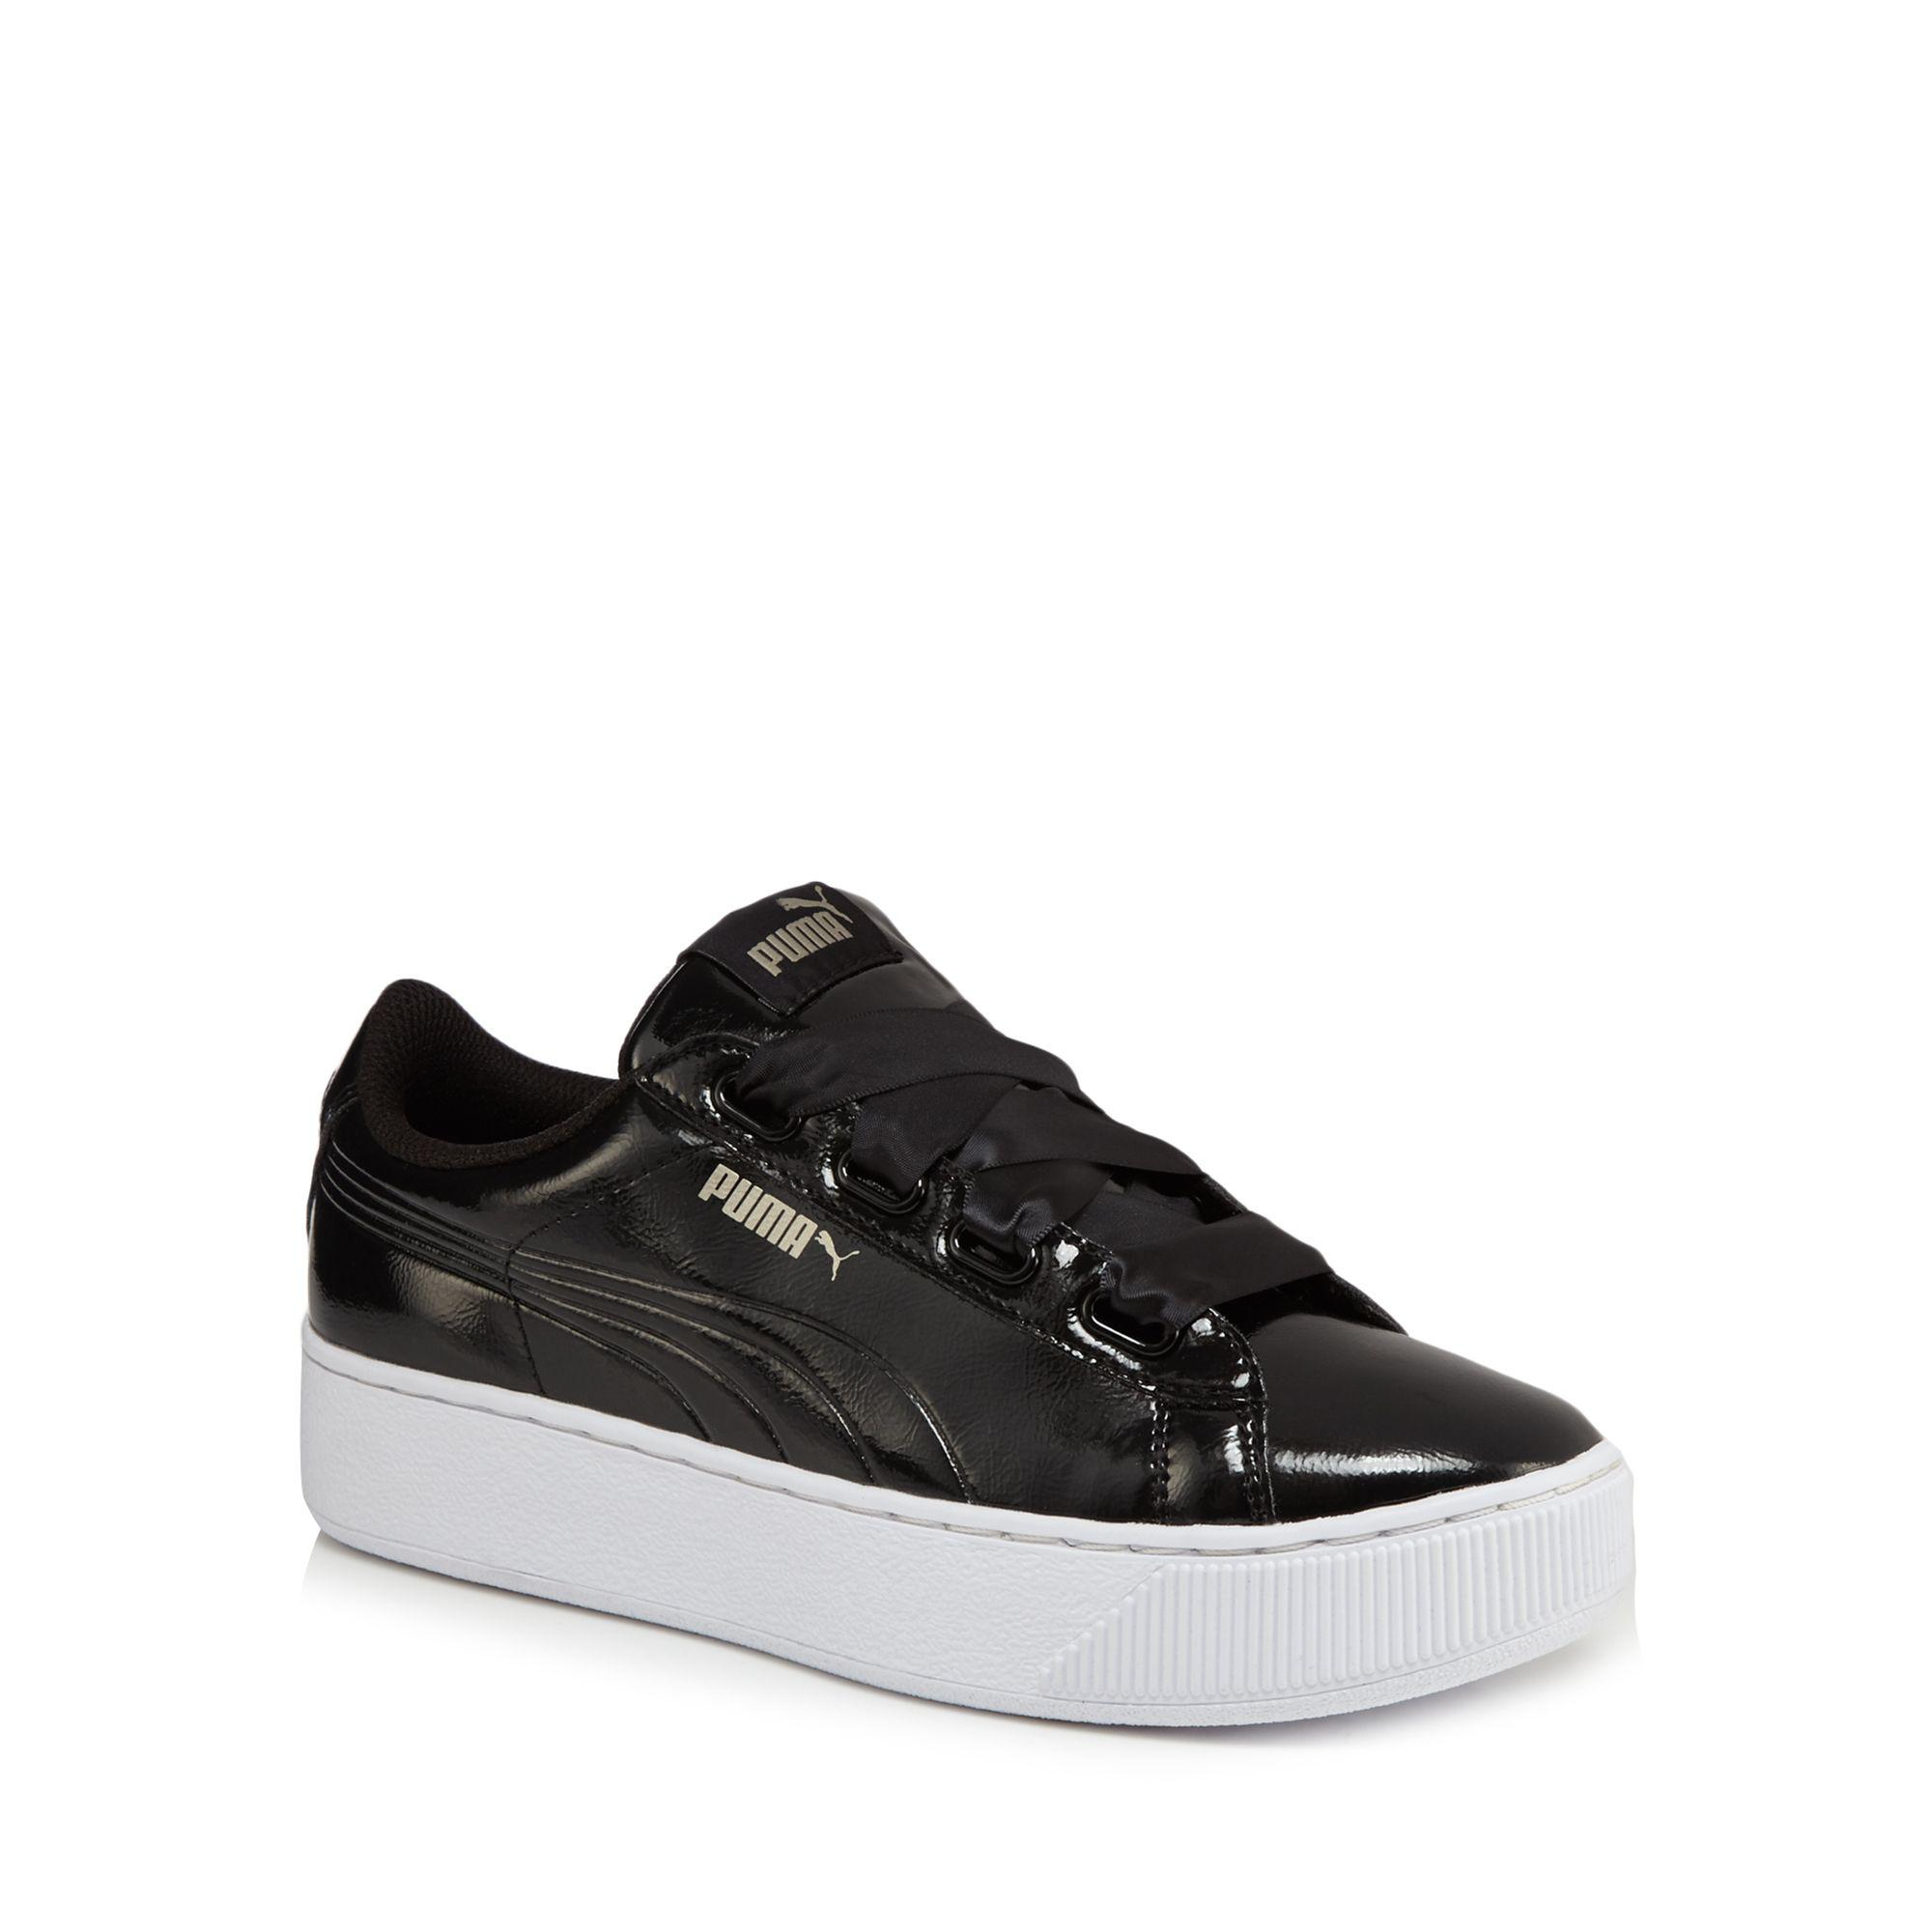 Black suede 'Vikky' mid flatform heel trainers shop for for sale free shipping tumblr EN1qxT7gy